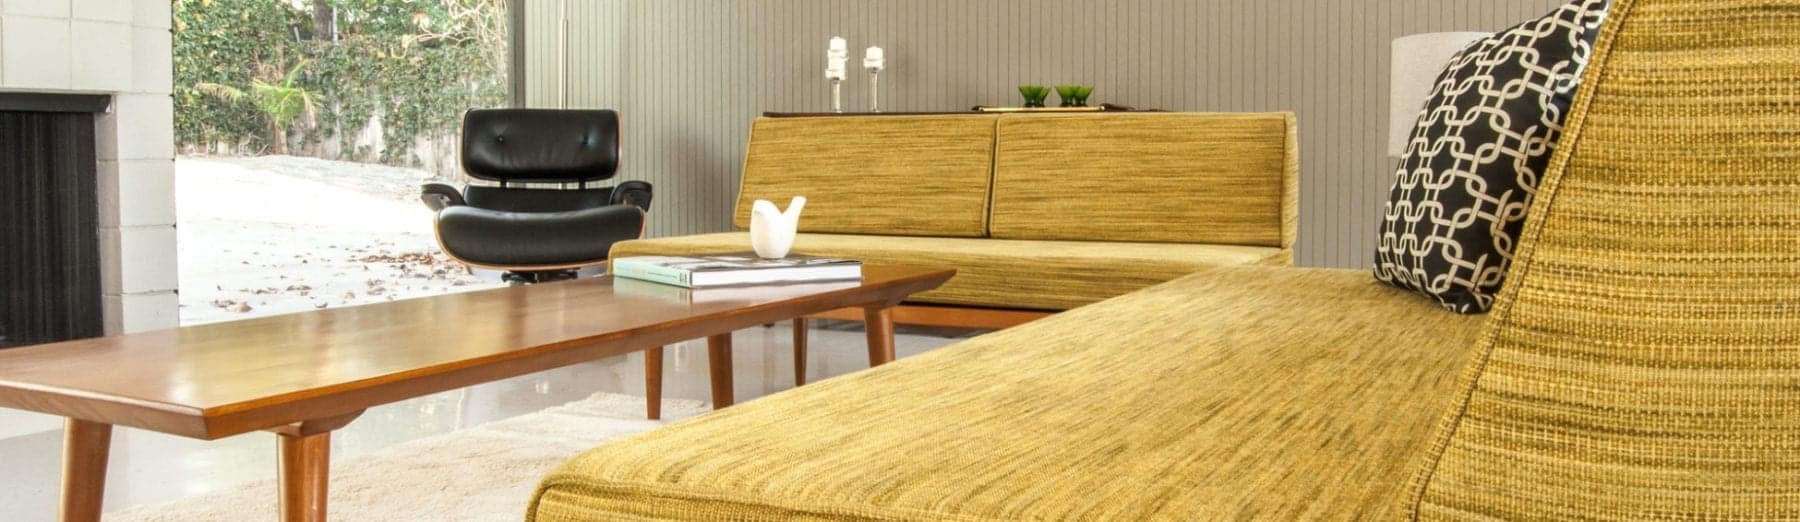 mid century modern daybed sofa - mad men style sofa - affordable mid century modern furniture